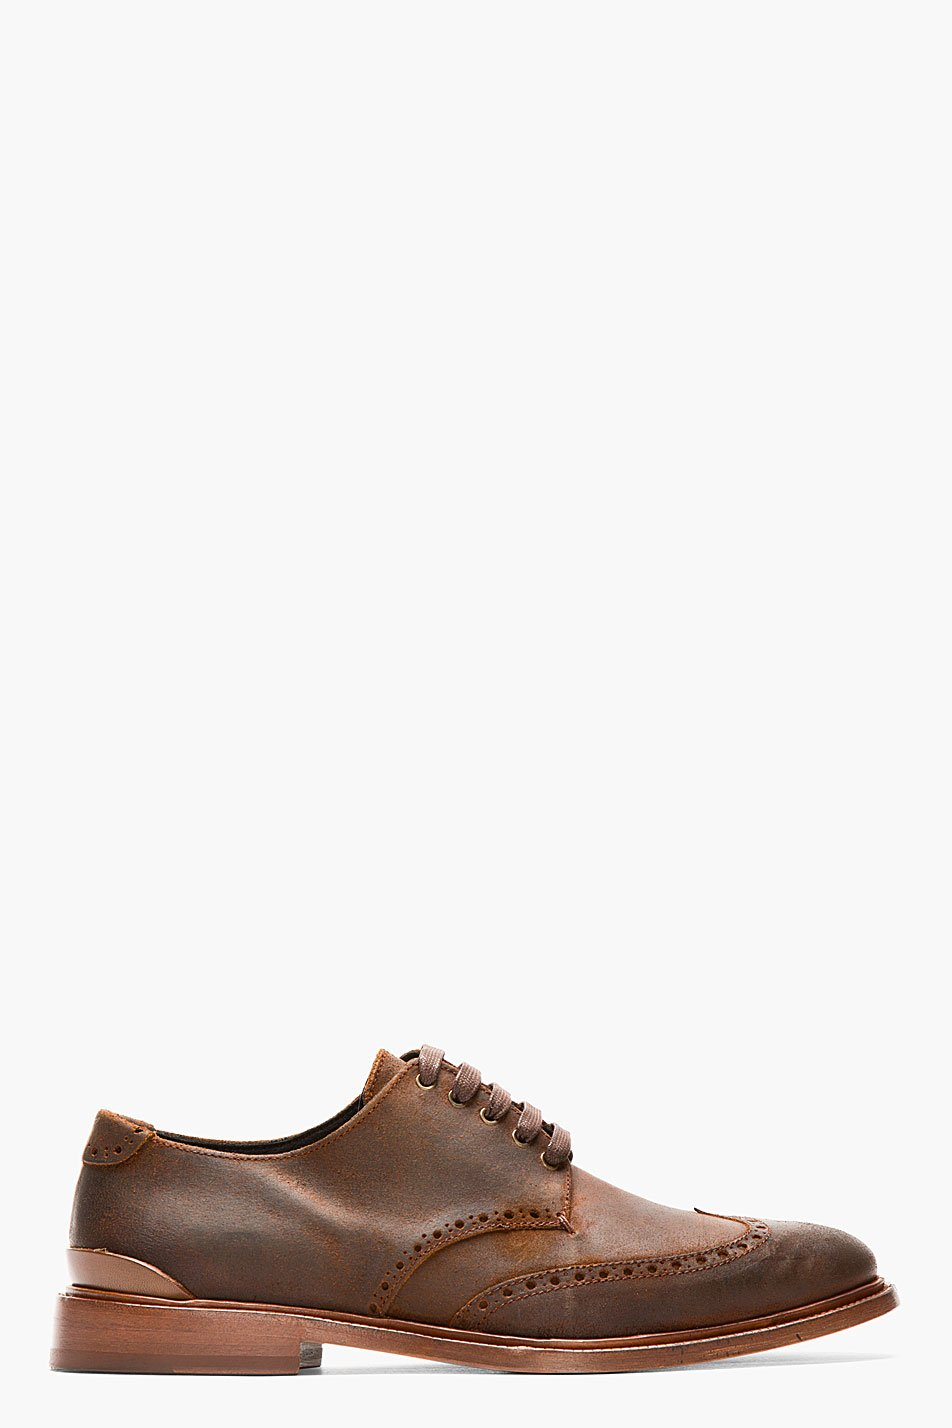 Rag and bone brown distressed leather archer blind brogues